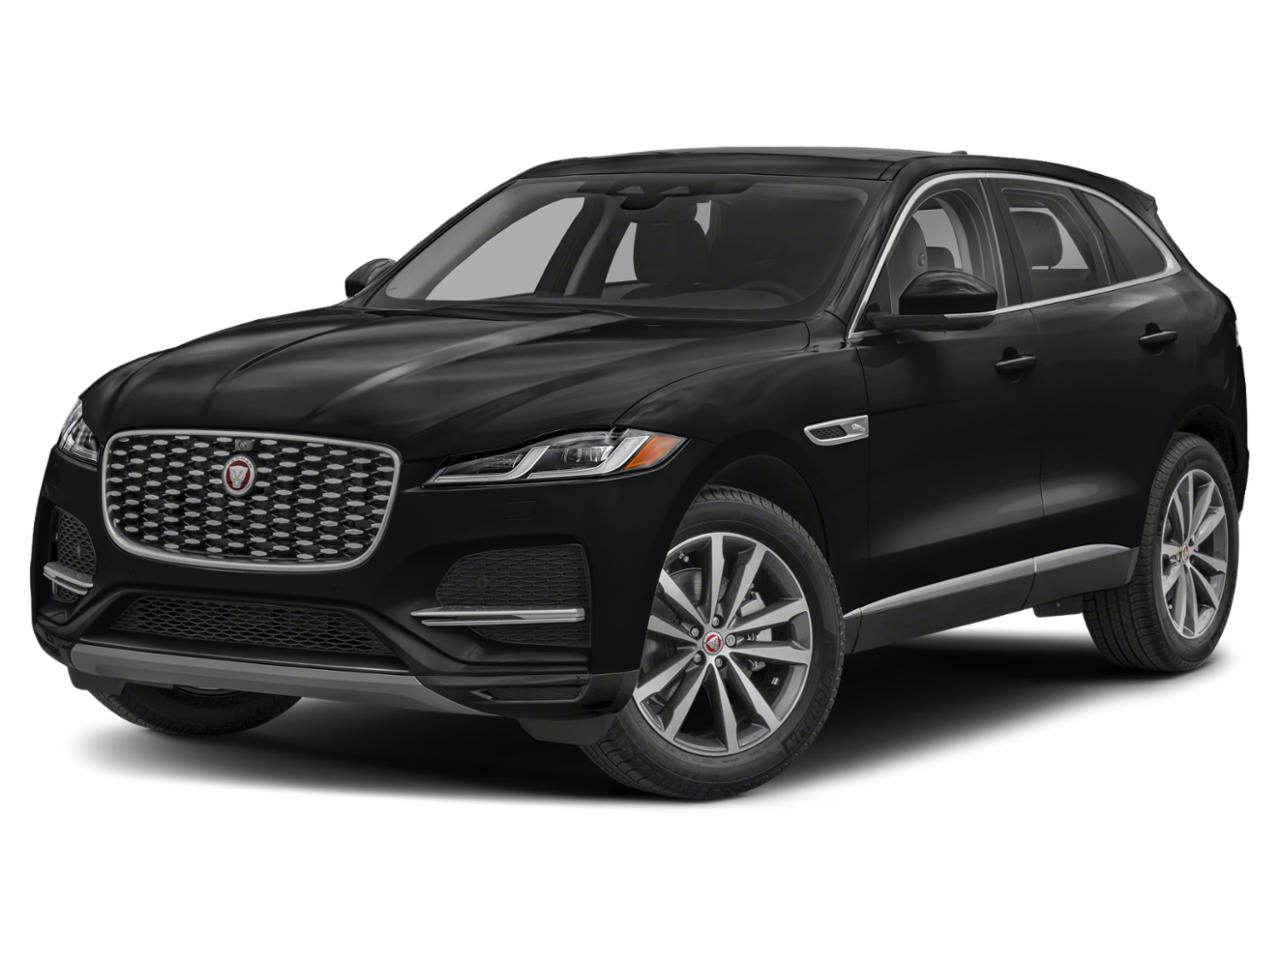 2021 Jaguar F-PACE Vehicle Photo in Appleton, WI 54913